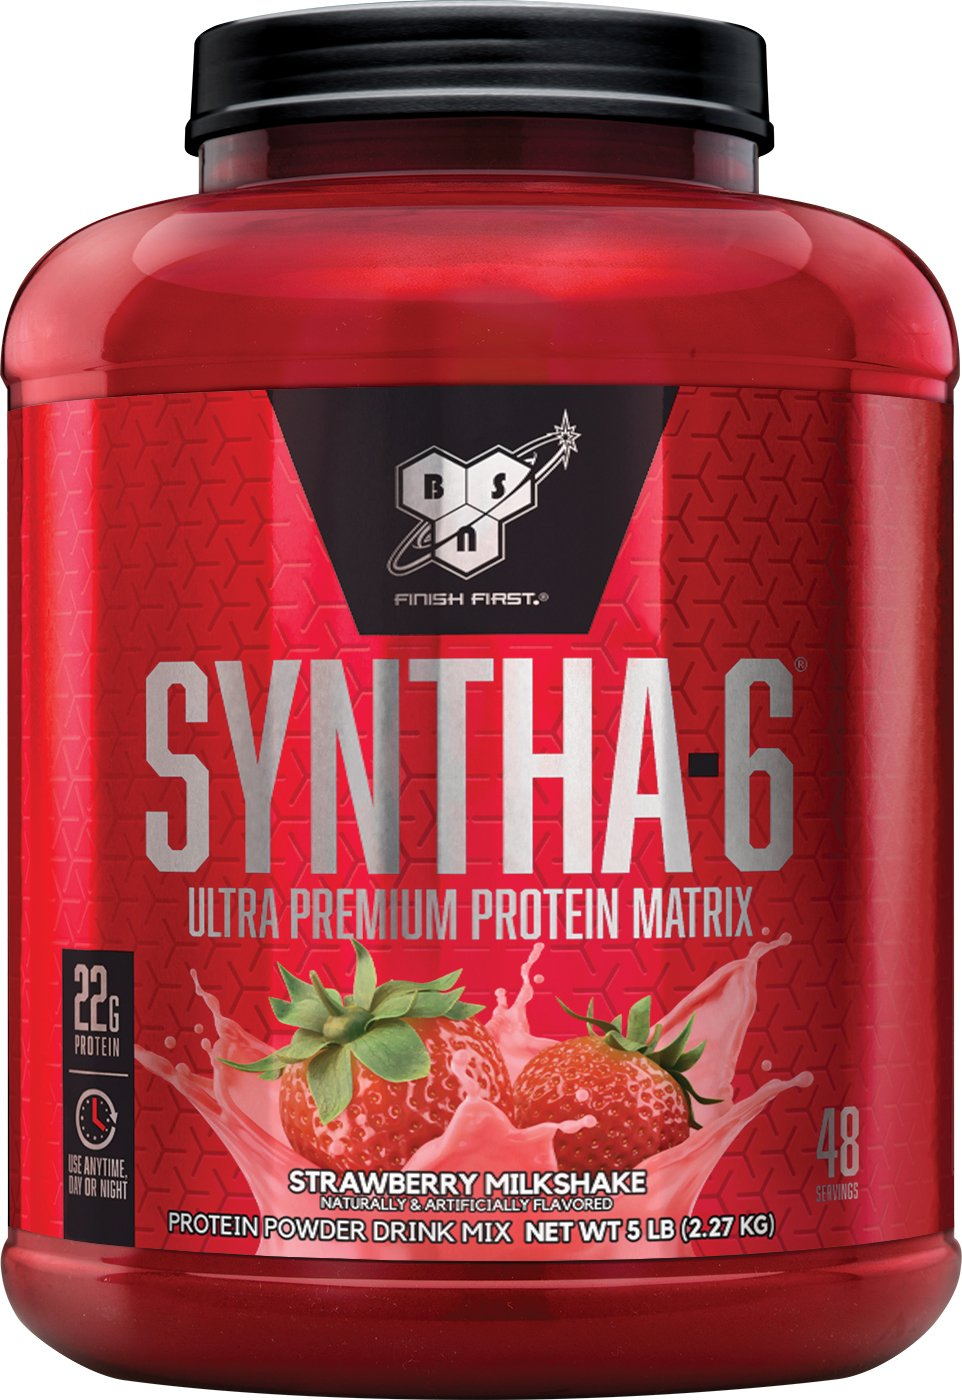 BSN SYNTHA-6 Whey Protein Powder, Micellar Casein, Milk Protein Isolate Meal Replacement Powder, Strawberry Milkshake, 48 Servings (Packaging May Vary)